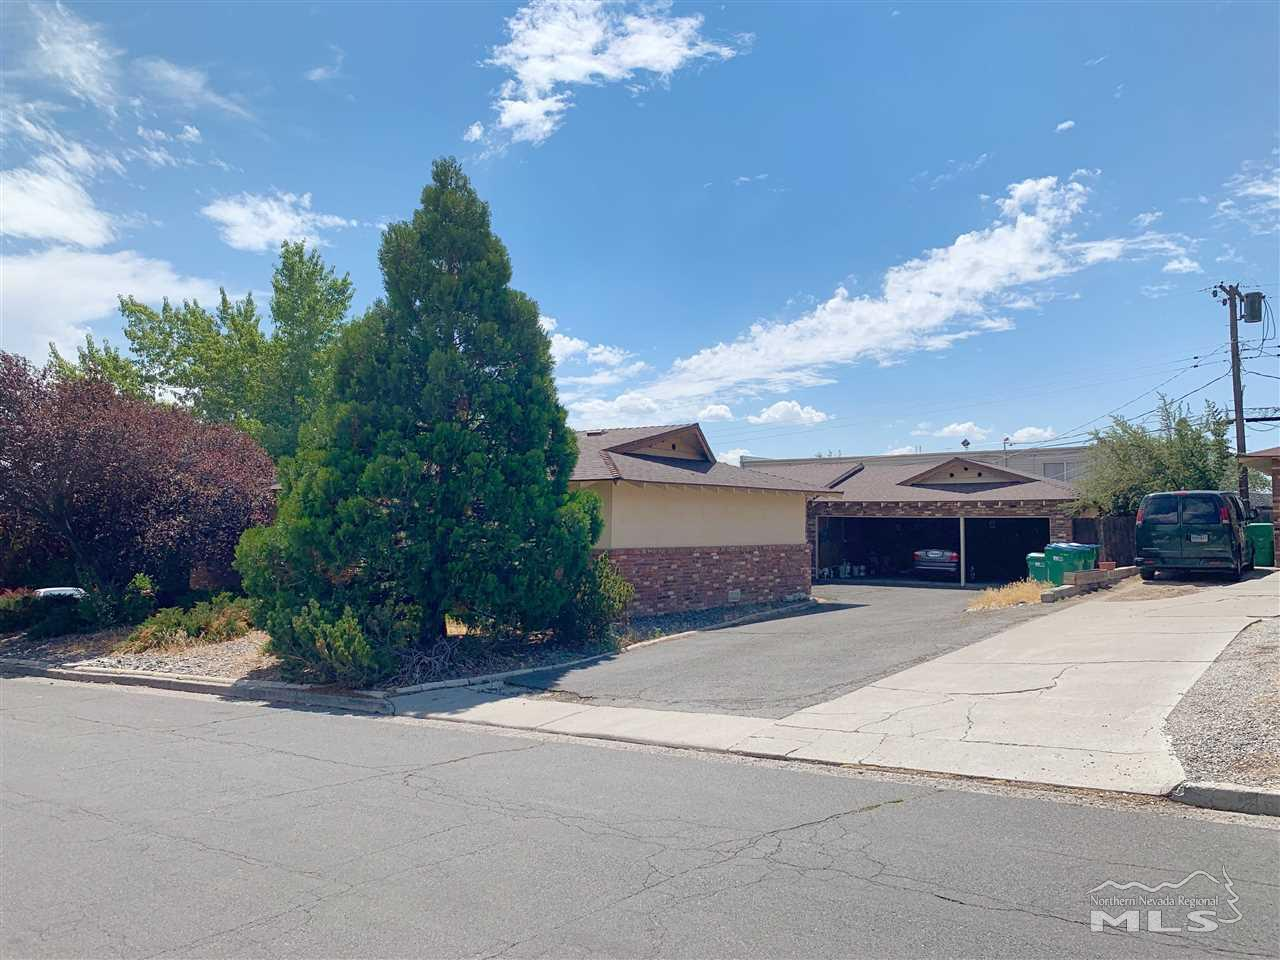 Image for 1370 W 6th St, Reno, NV 89503